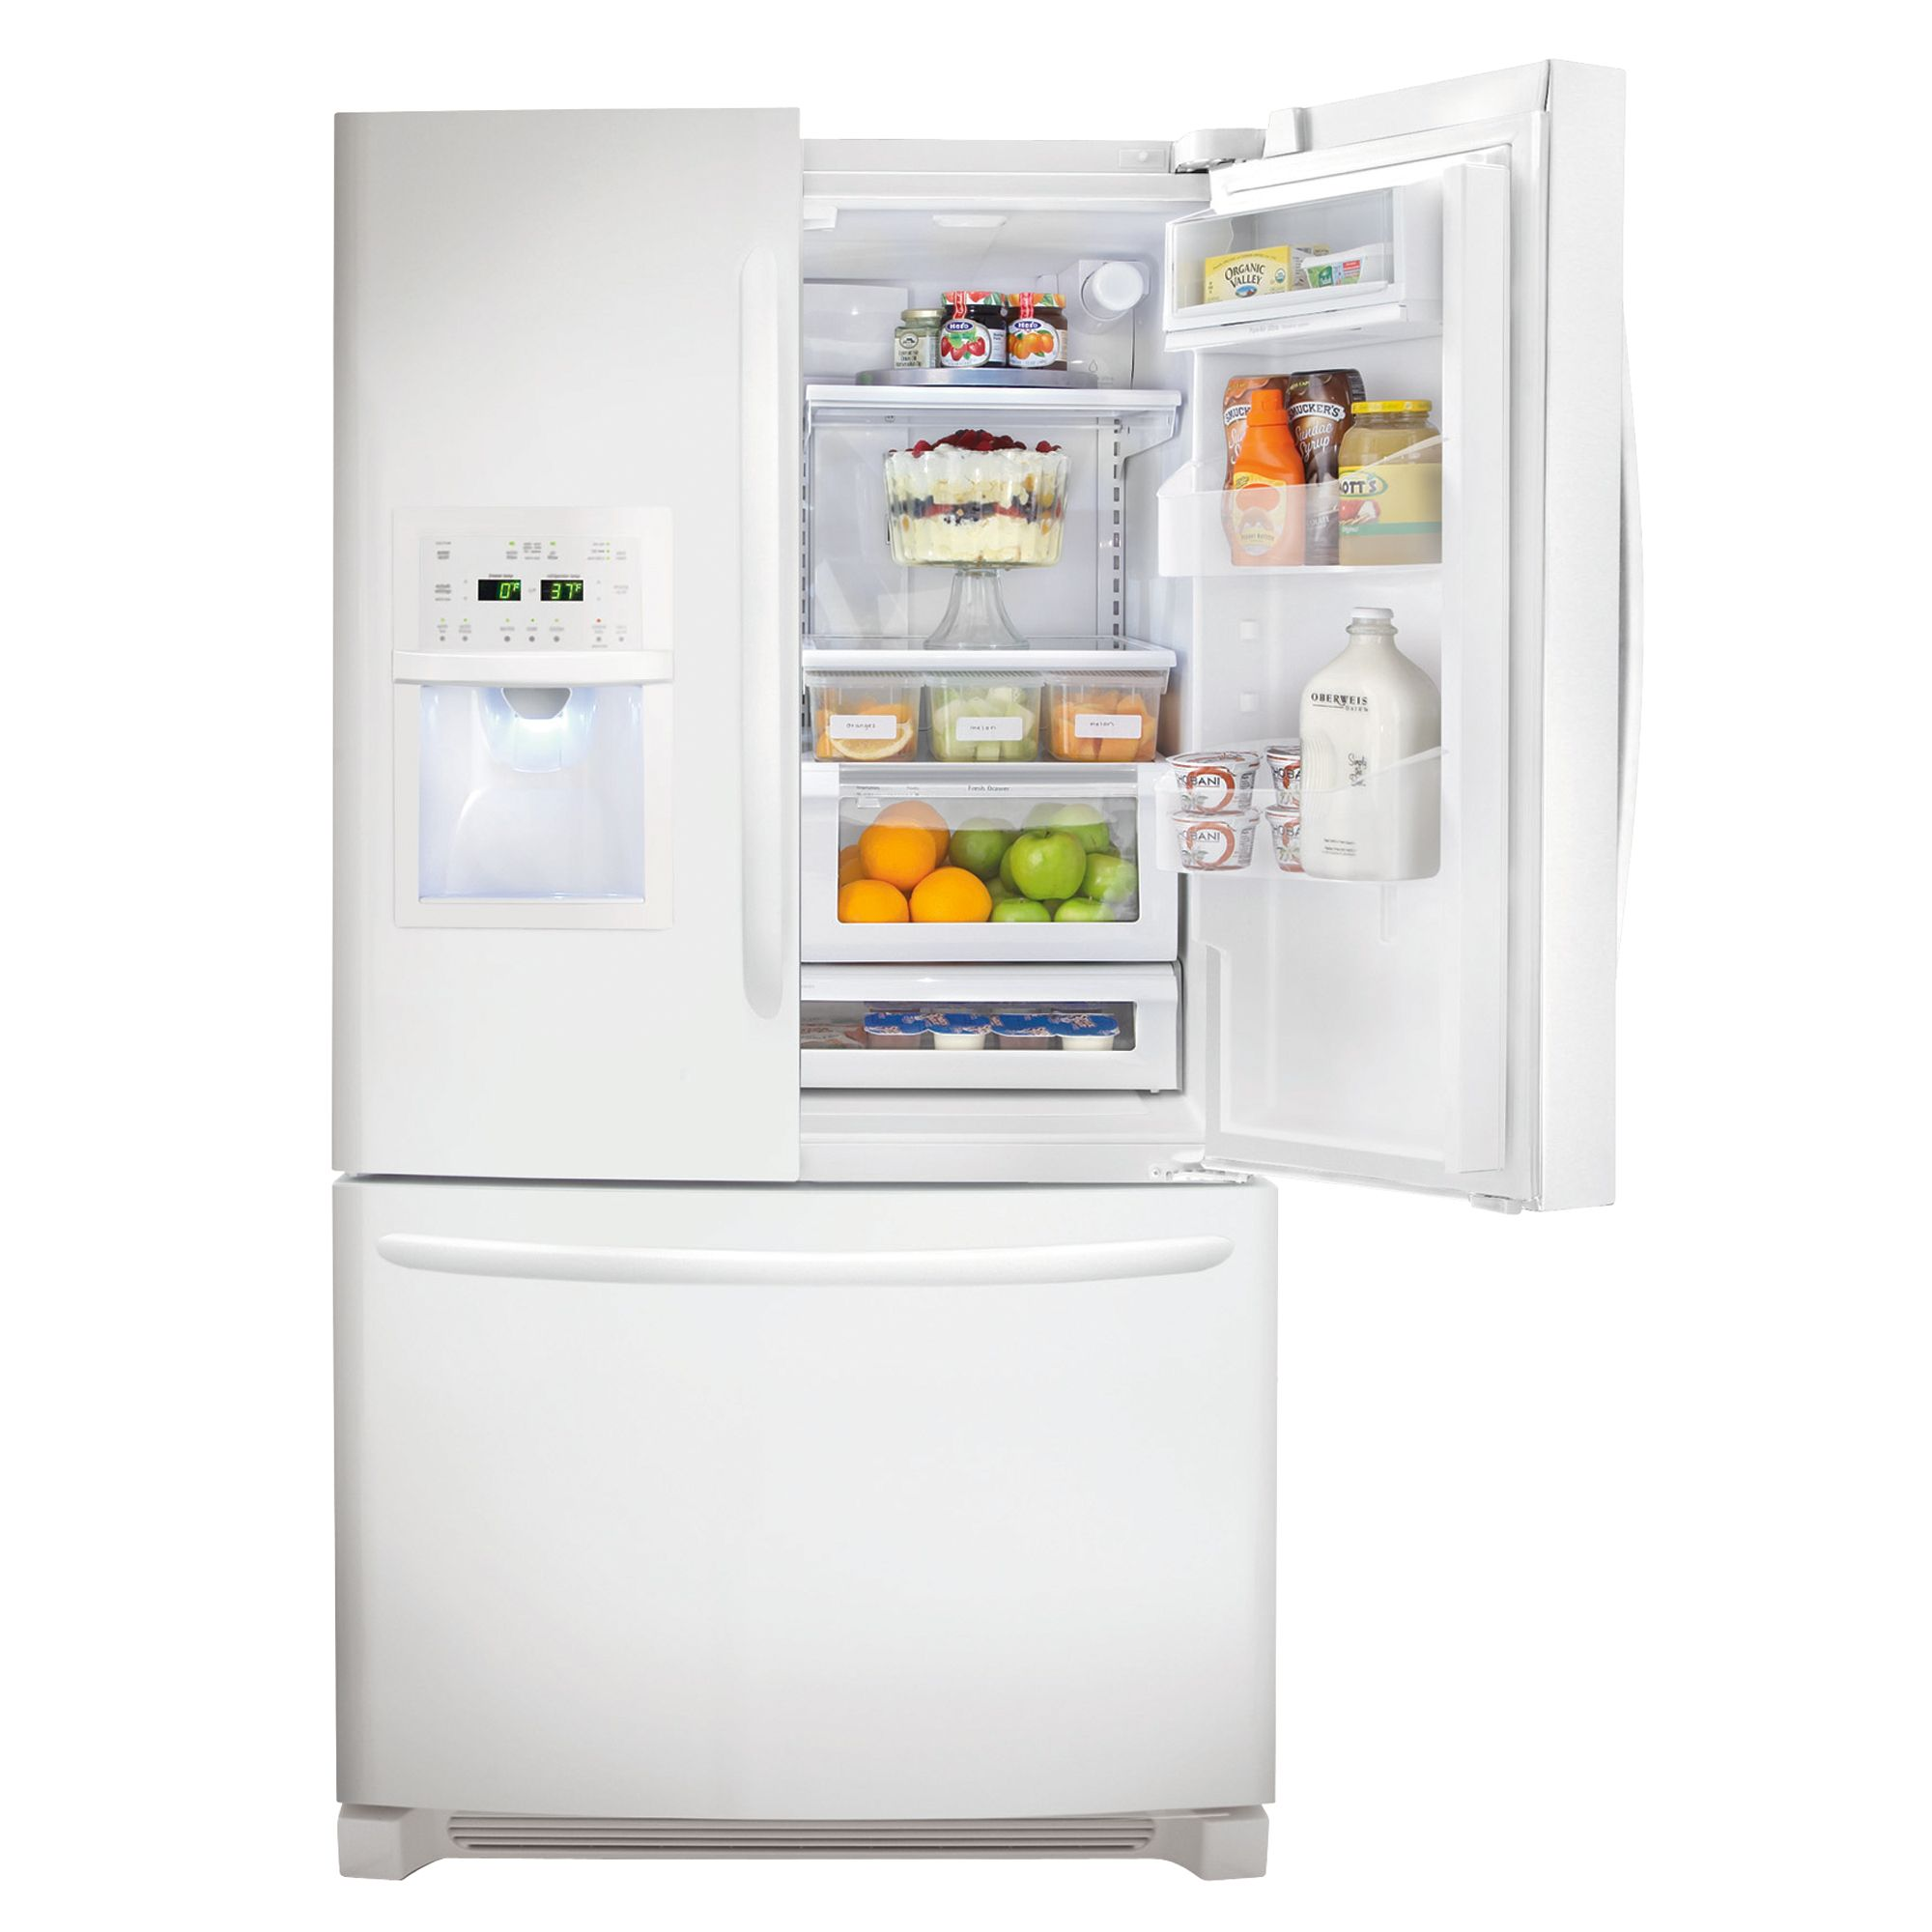 Frigidaire 25.8 cu. ft. French-Door Bottom-Freezer Refrigerator (FGUB2642L)